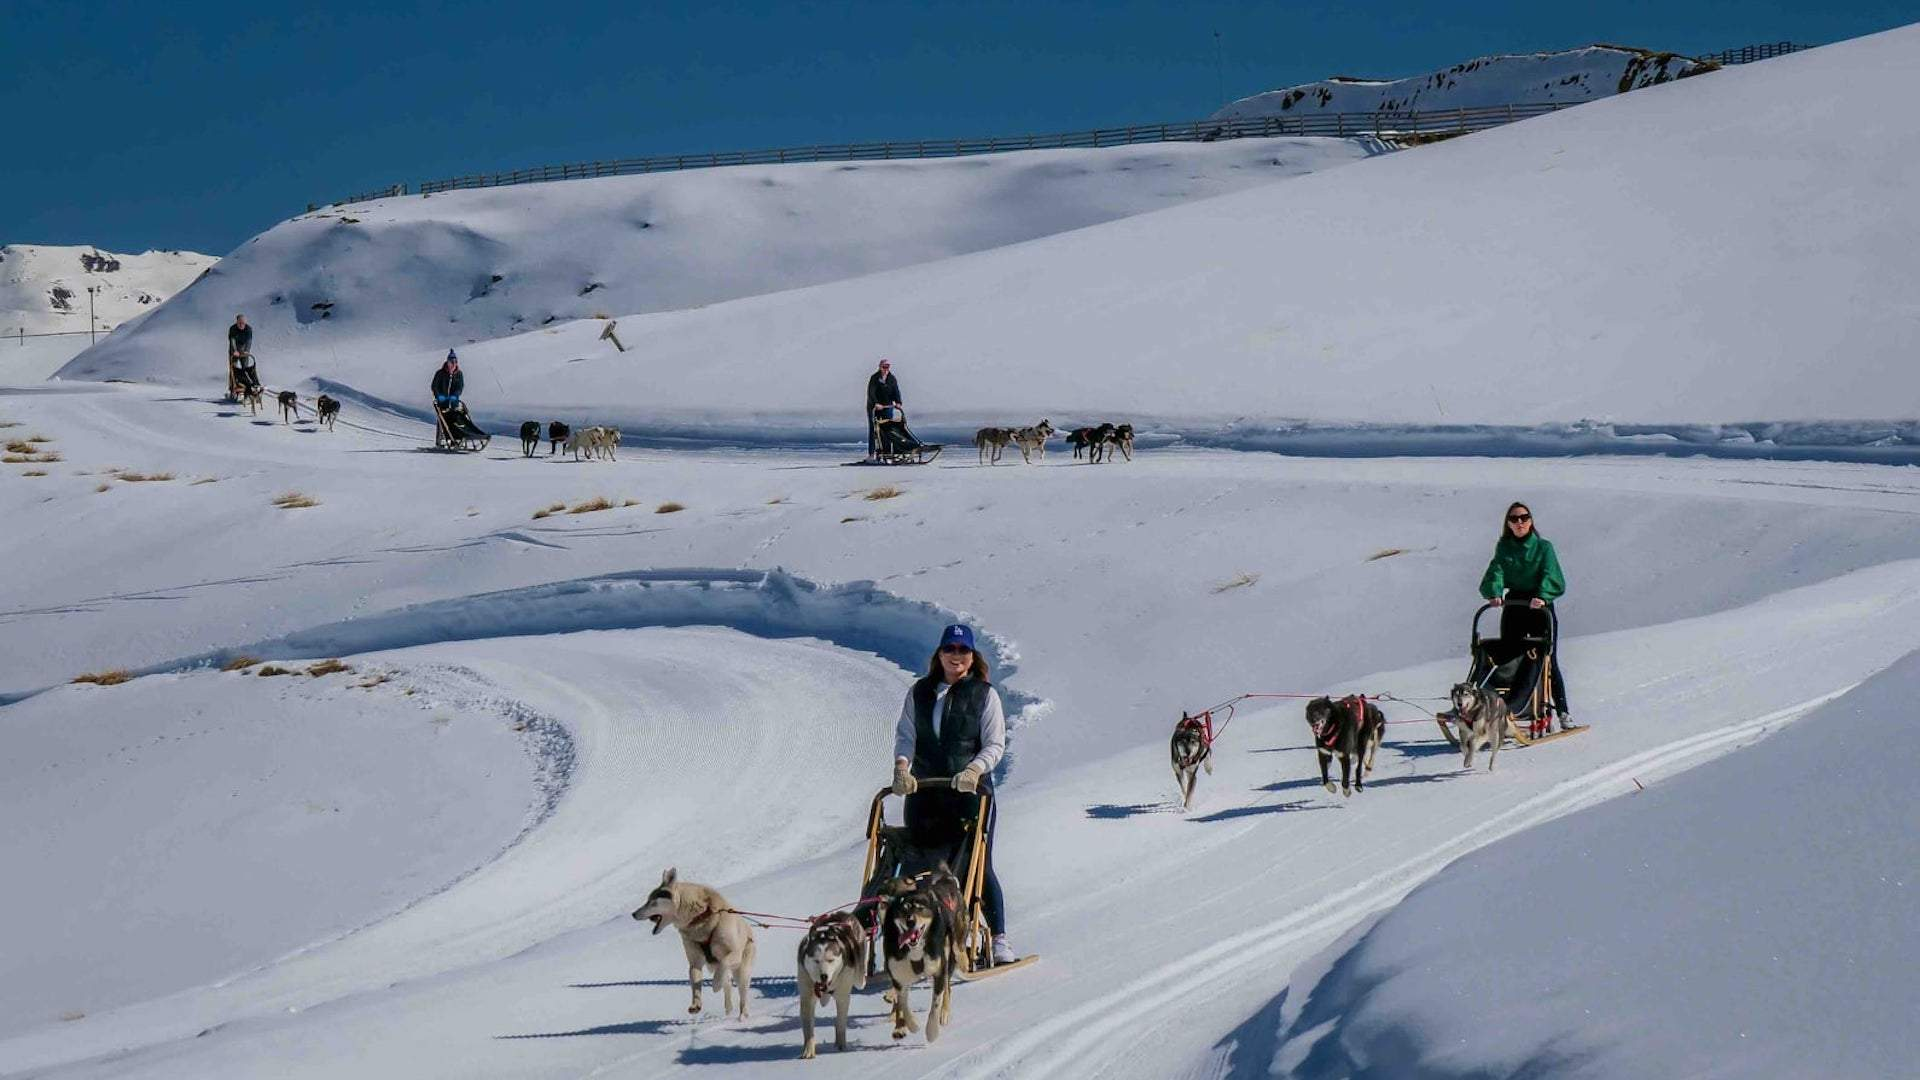 Six New Zealand Snow Experiences That Aren't Just Skiing or Snowboarding